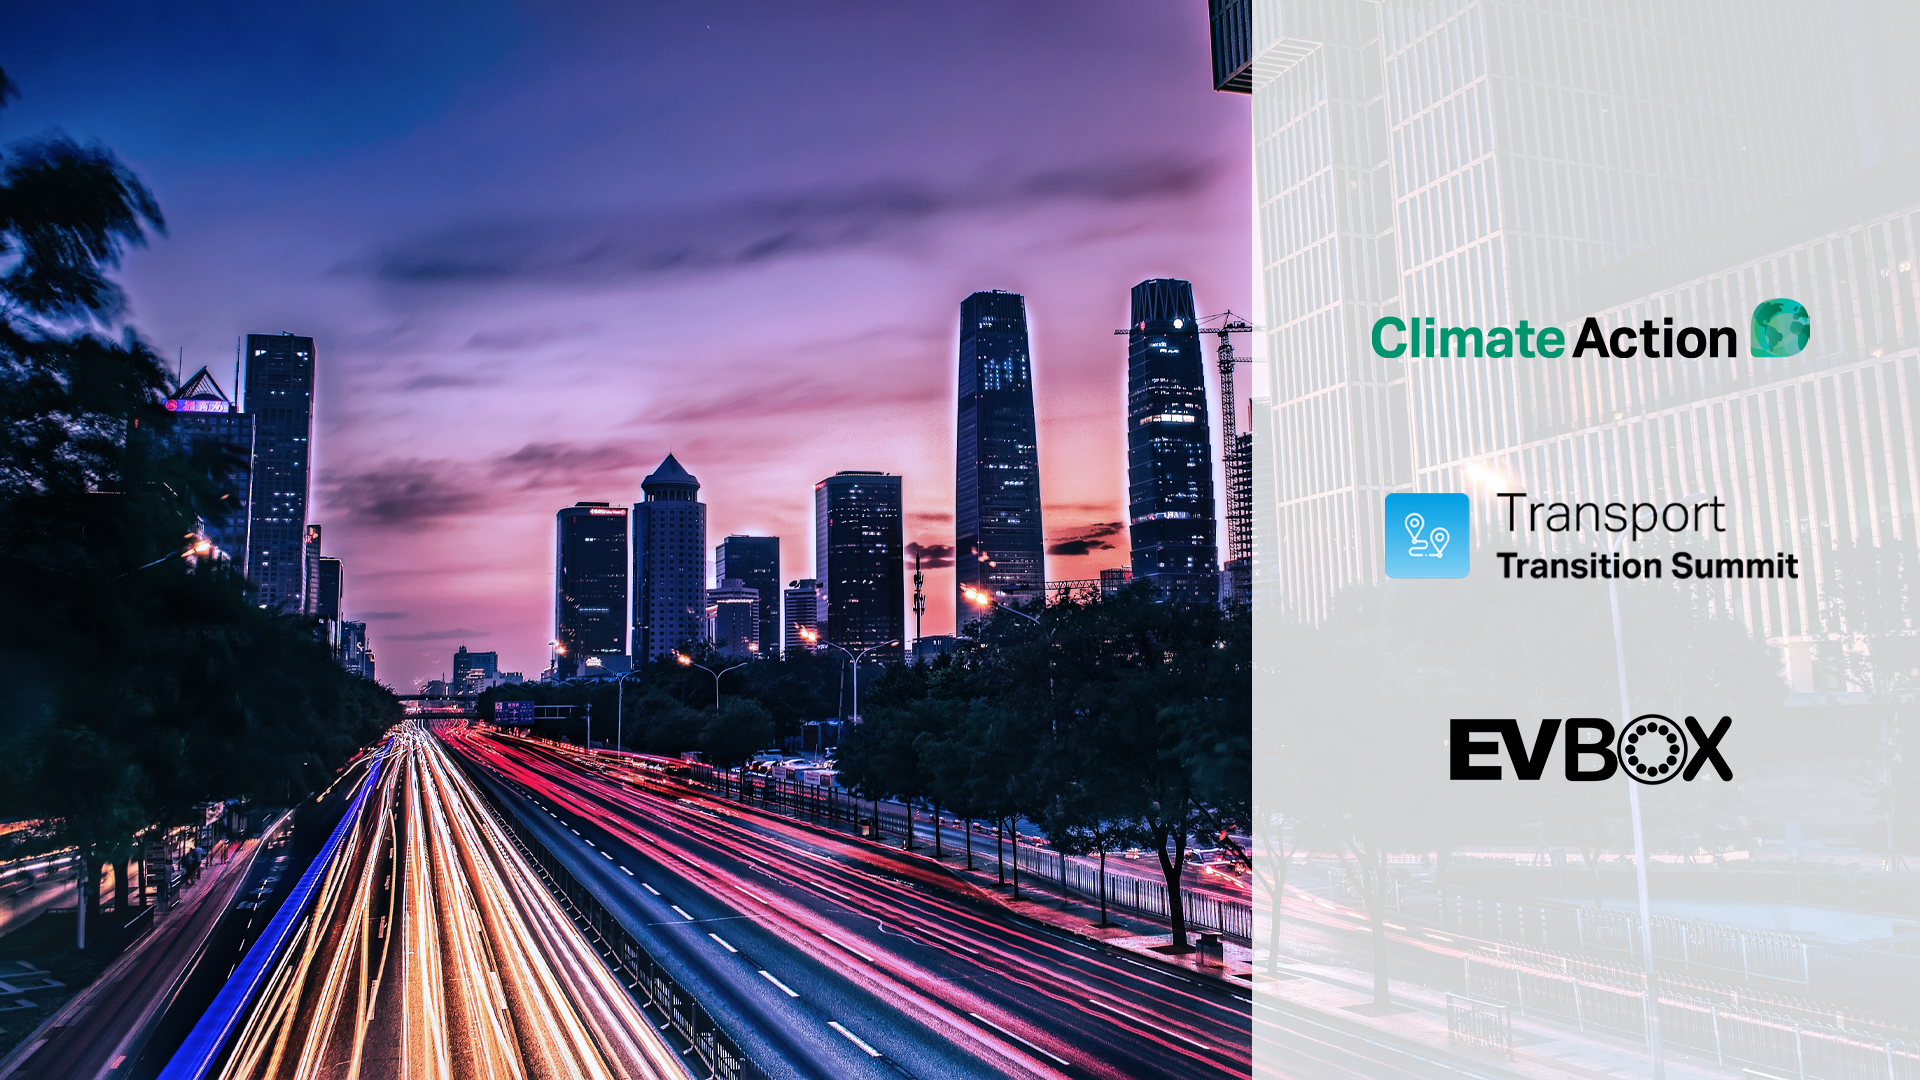 EVBox Group to present at Transport Transition Summit